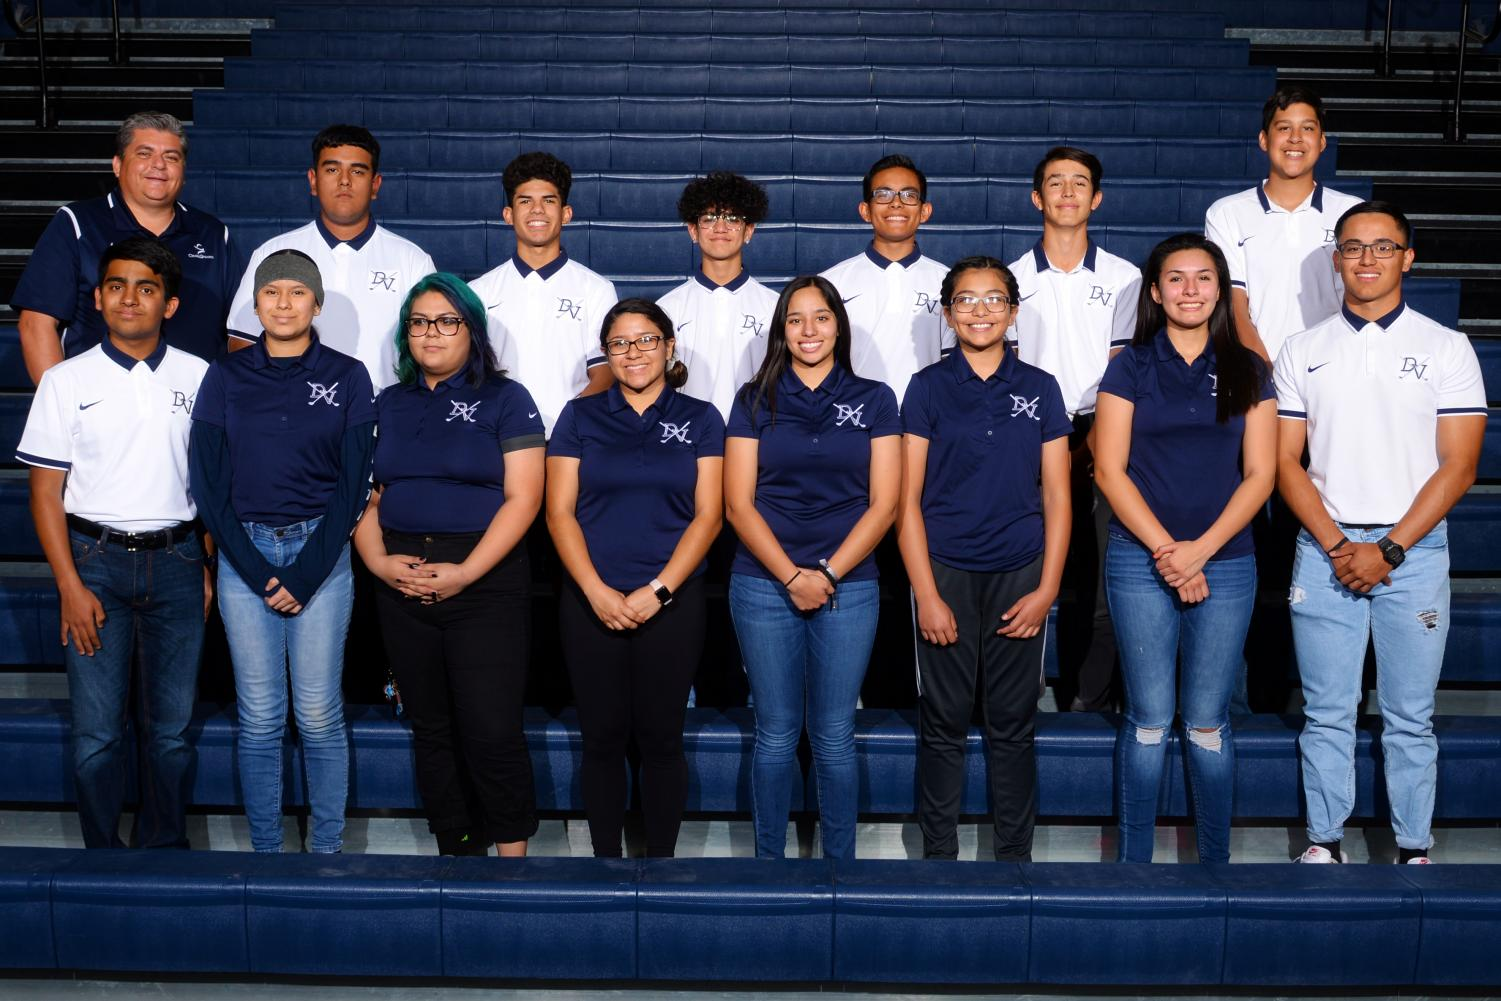 2018-2019 golf team members Aaron, Ethan, Anson, Alex, Luis, Victor, Miguel, Danni, Hillary, Brianna, Adrian, Kailey, Jackie, and Roman along with Coach Cordova.